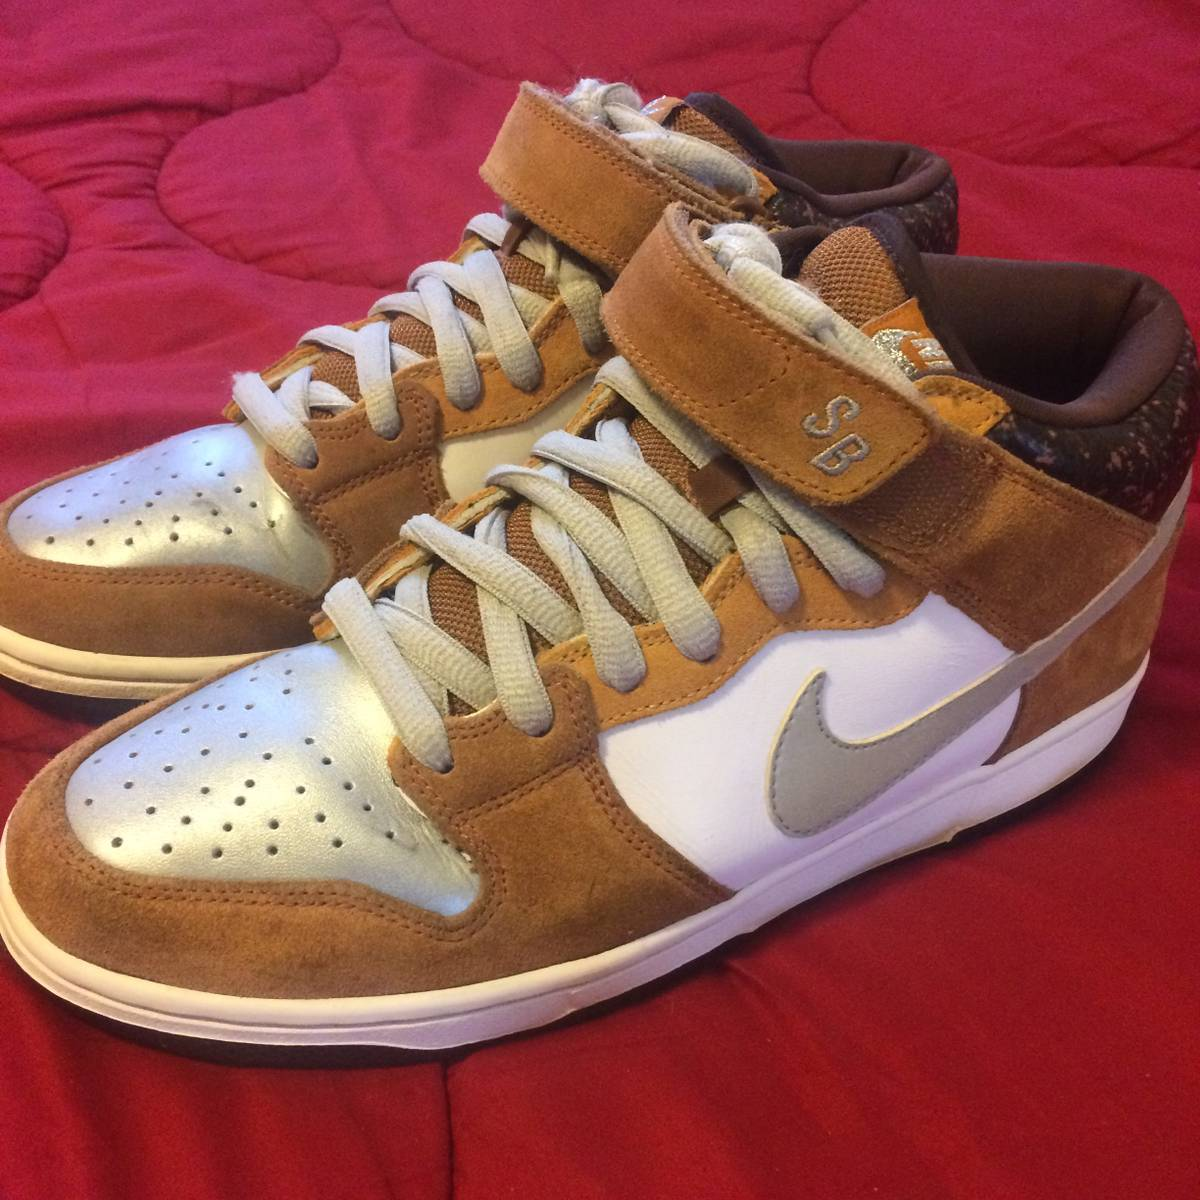 check out f072c afd8c Nike NIKE SB DUNK MID FENDER BASS 3M REFLECTIVE SILVER GUITAR Size 9.5 - Low-Top  Sneakers for Sale - Grailed